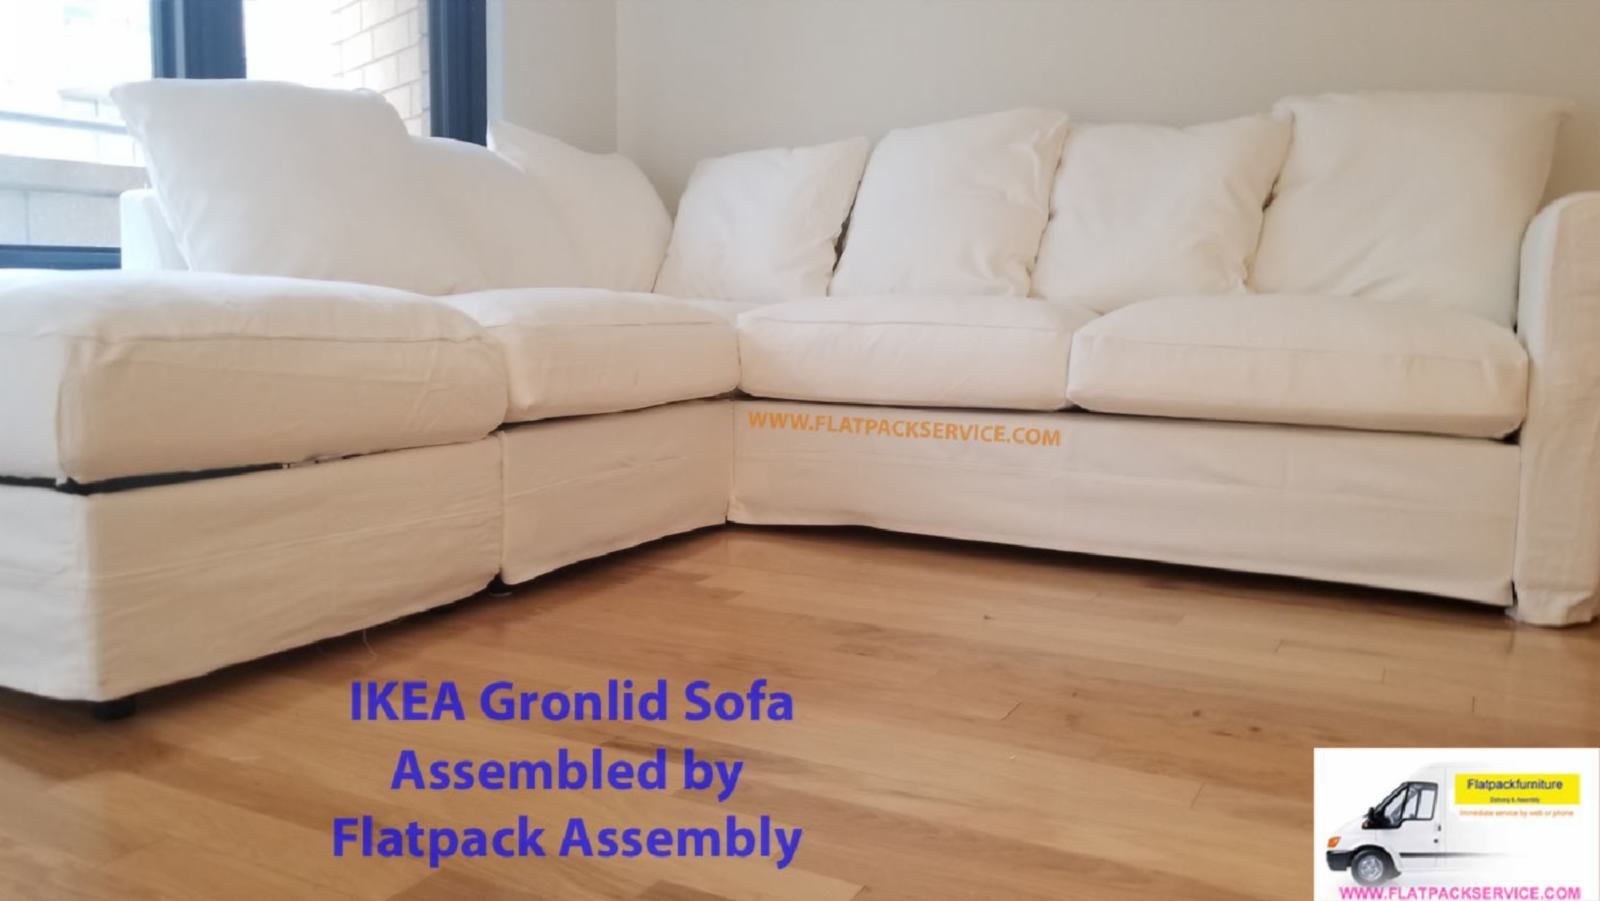 Fine Ikea Gronlid Sofa Flatpack Assembly 2 Ikea In Home Caraccident5 Cool Chair Designs And Ideas Caraccident5Info